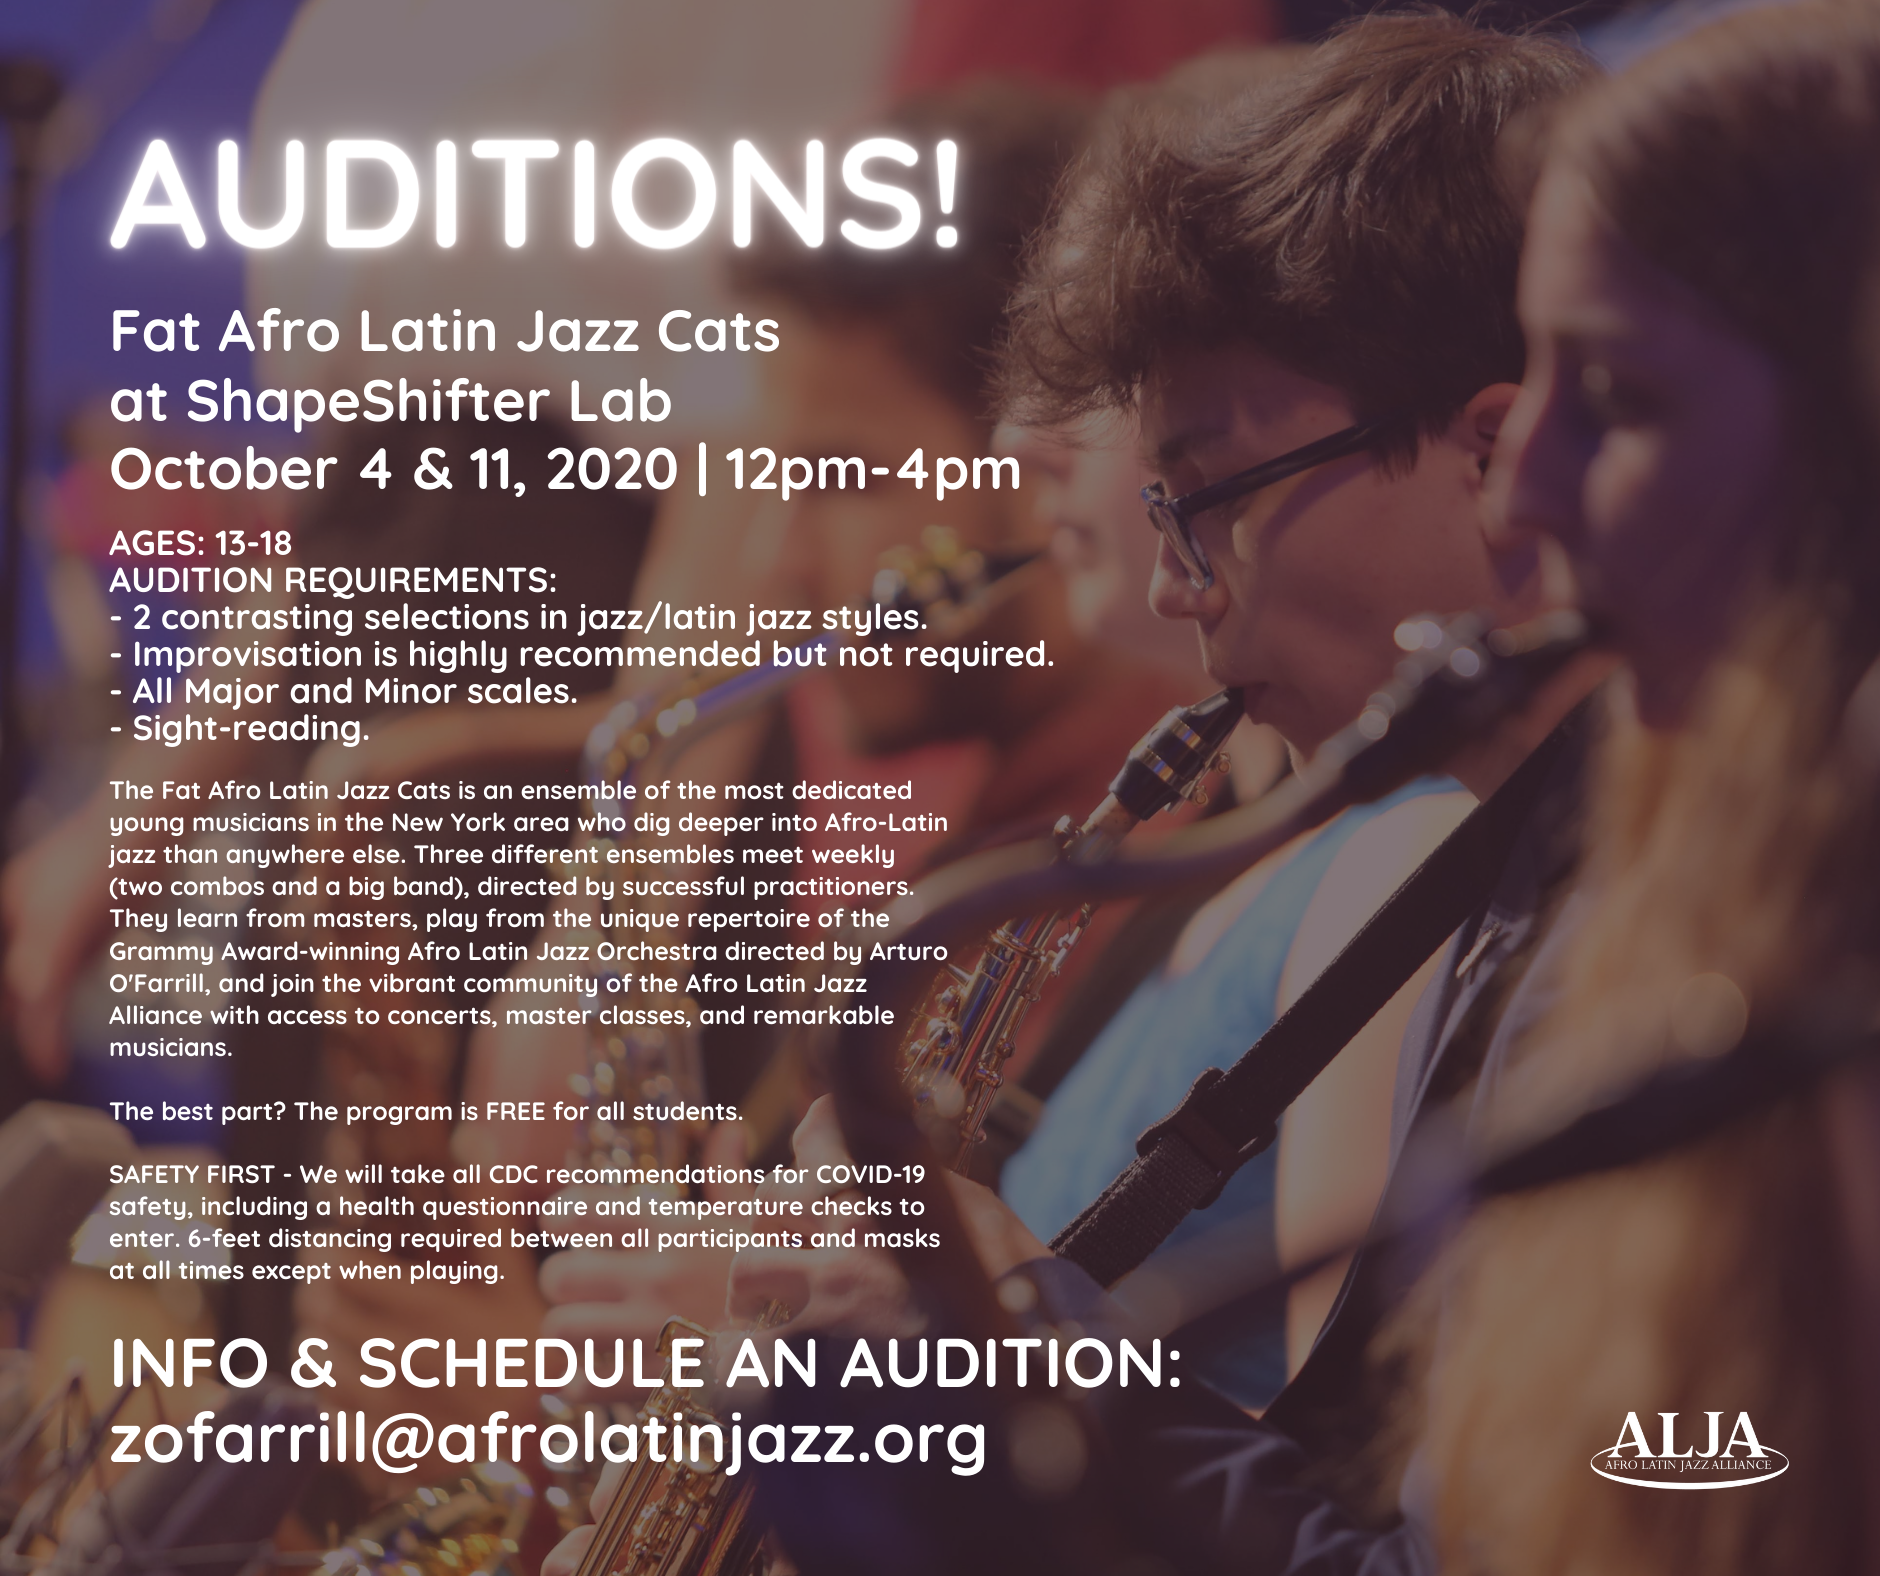 Auditions for the Fat Afro Latin Jazz CatsShapeShifter Lab, BrooklynSunday, October 4 & 11, 2020